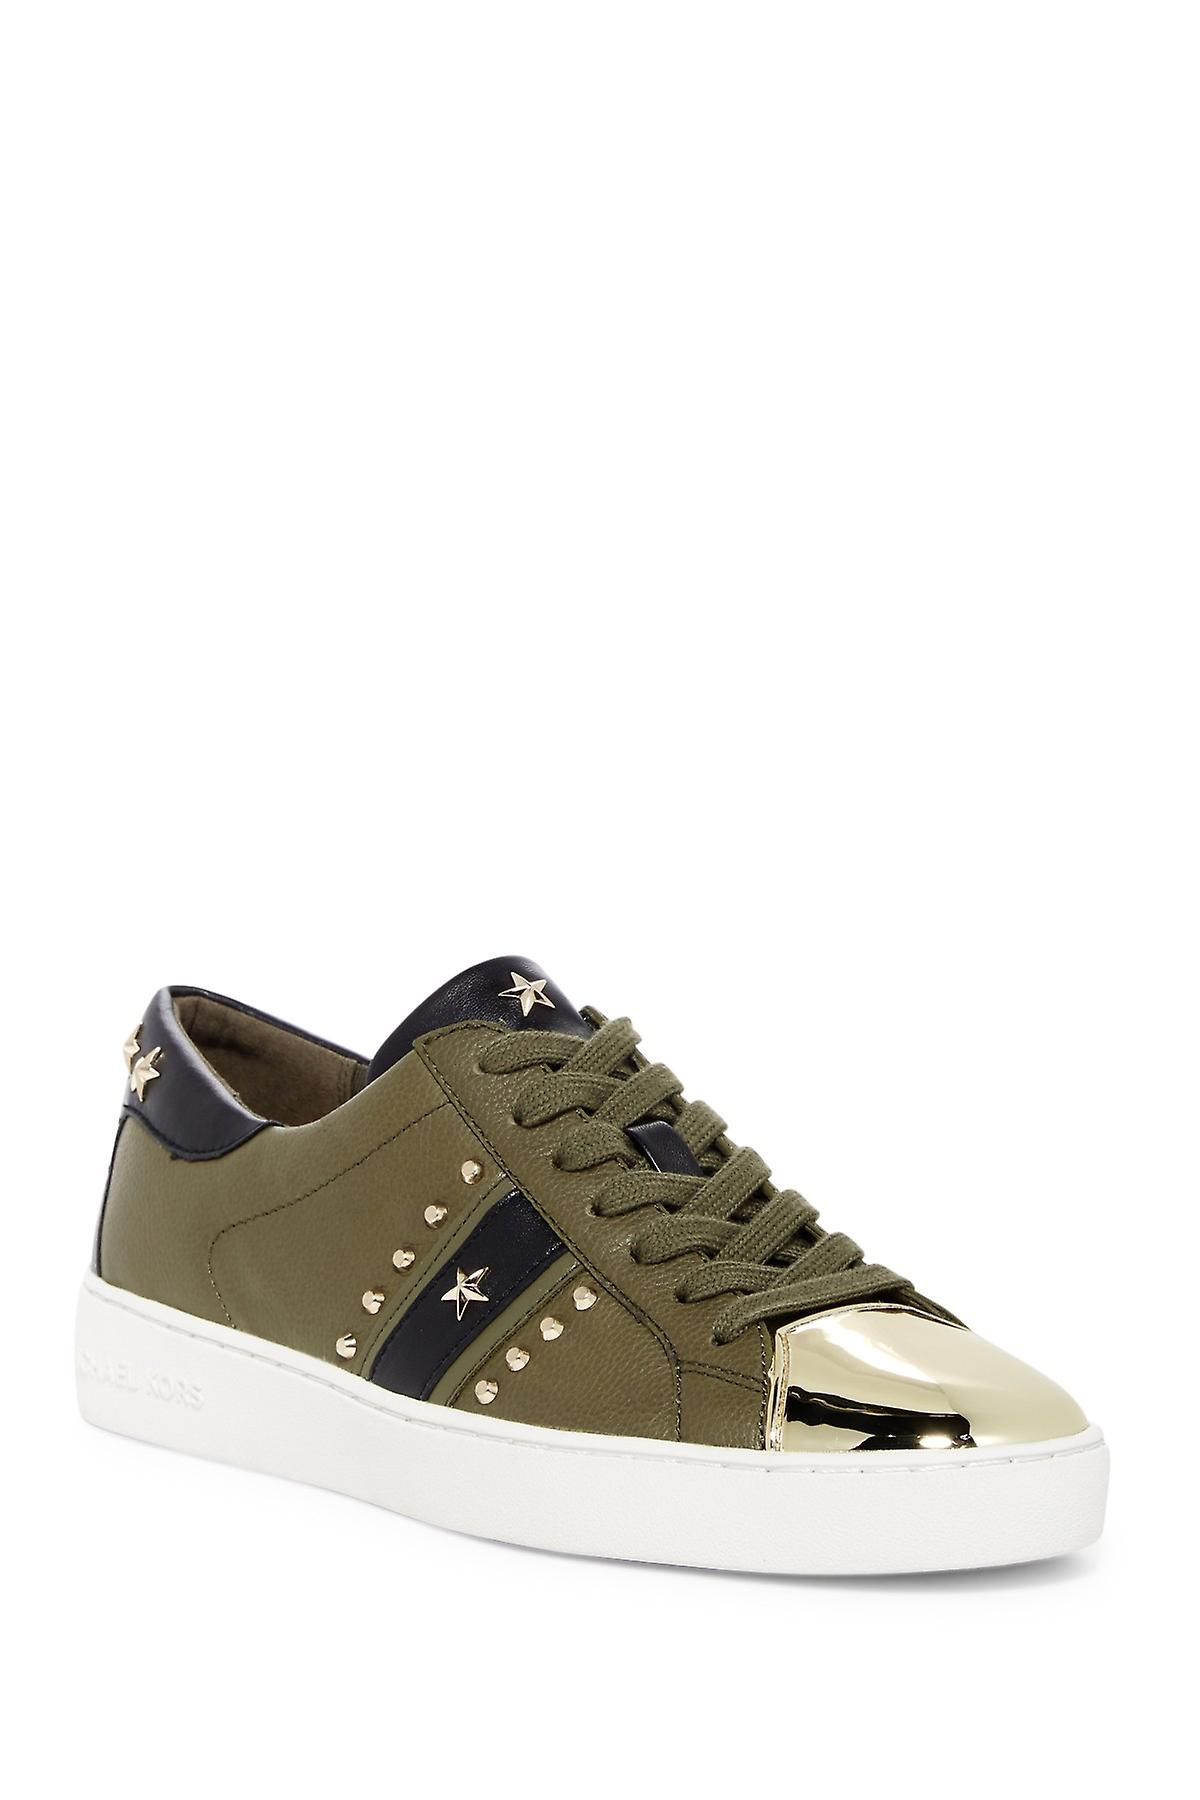 Michael Michael Kors Womens Frankie Stripe Leather Low Top Lace Up Fashion Sn...